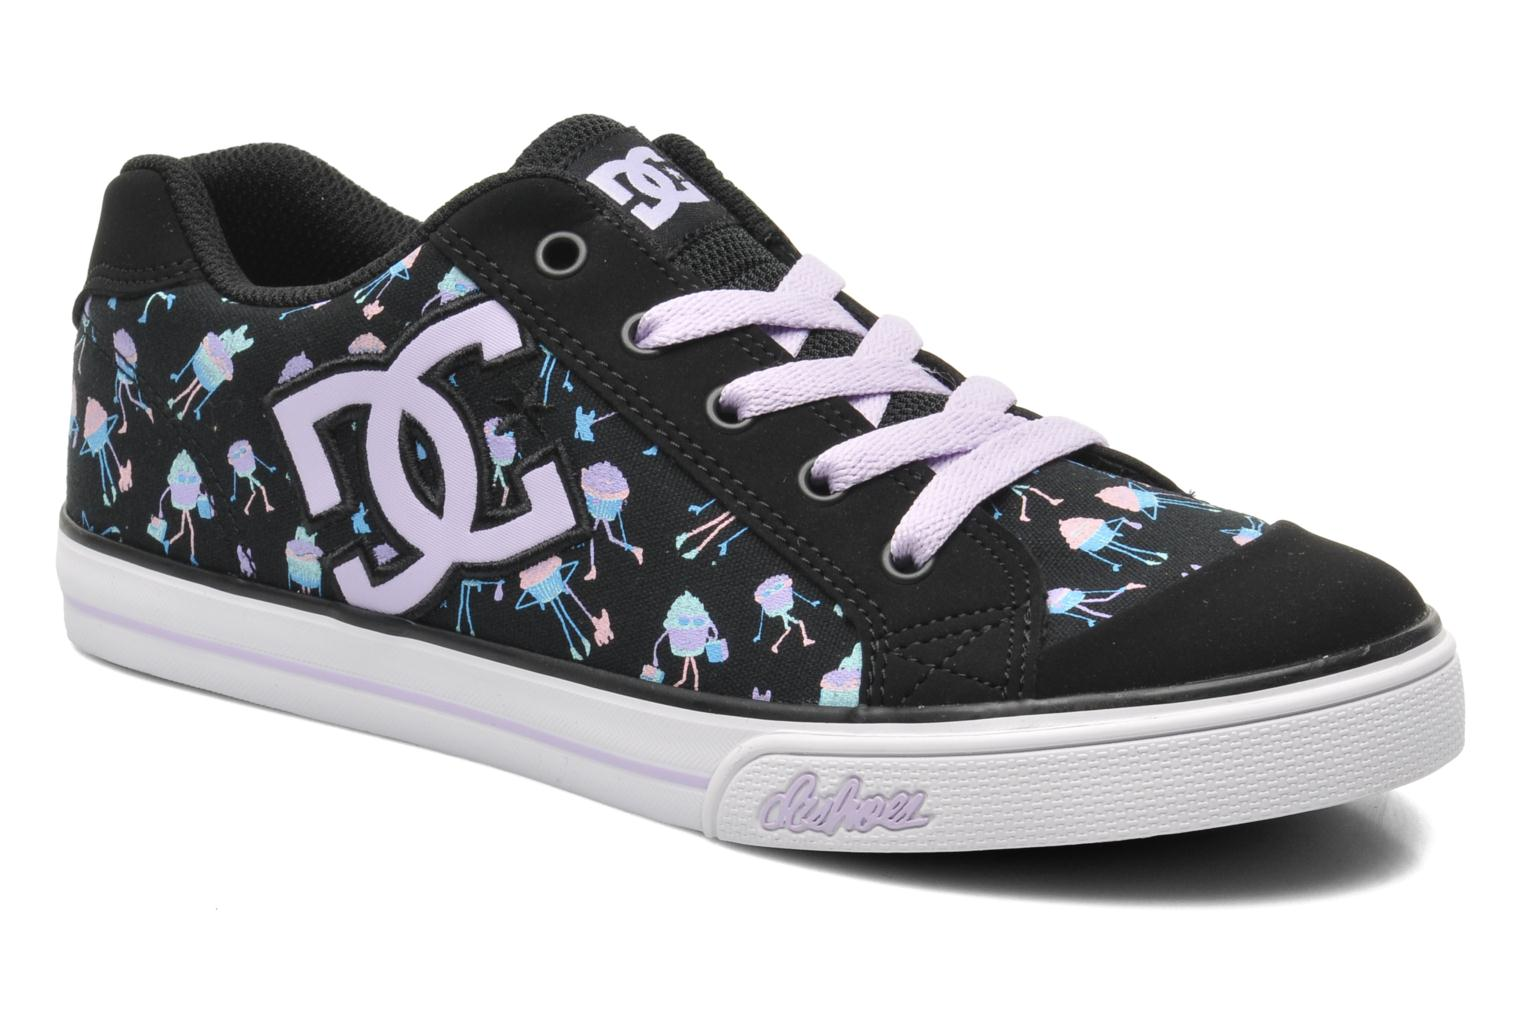 CHELSEA GRAFFIK by DC Shoes